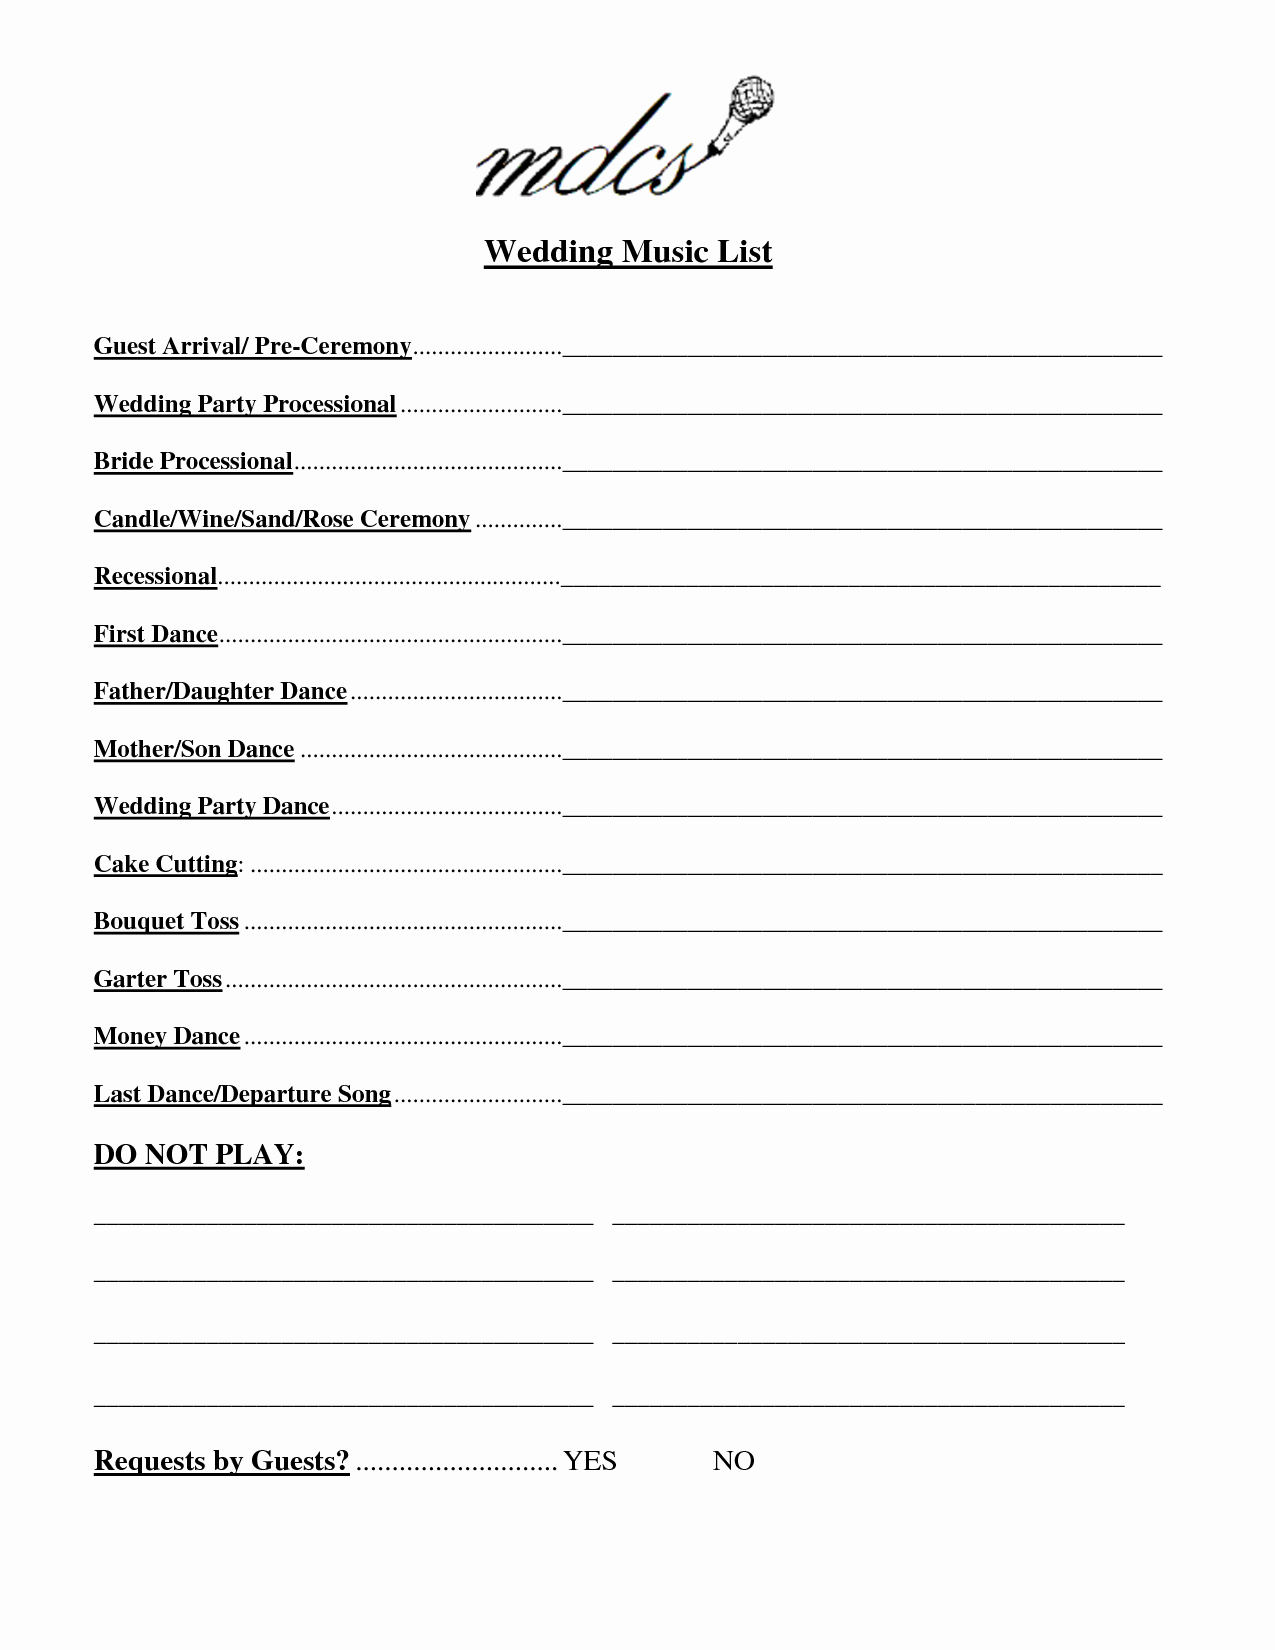 Wedding Party Lineup Template New Wedding Party List Template Free